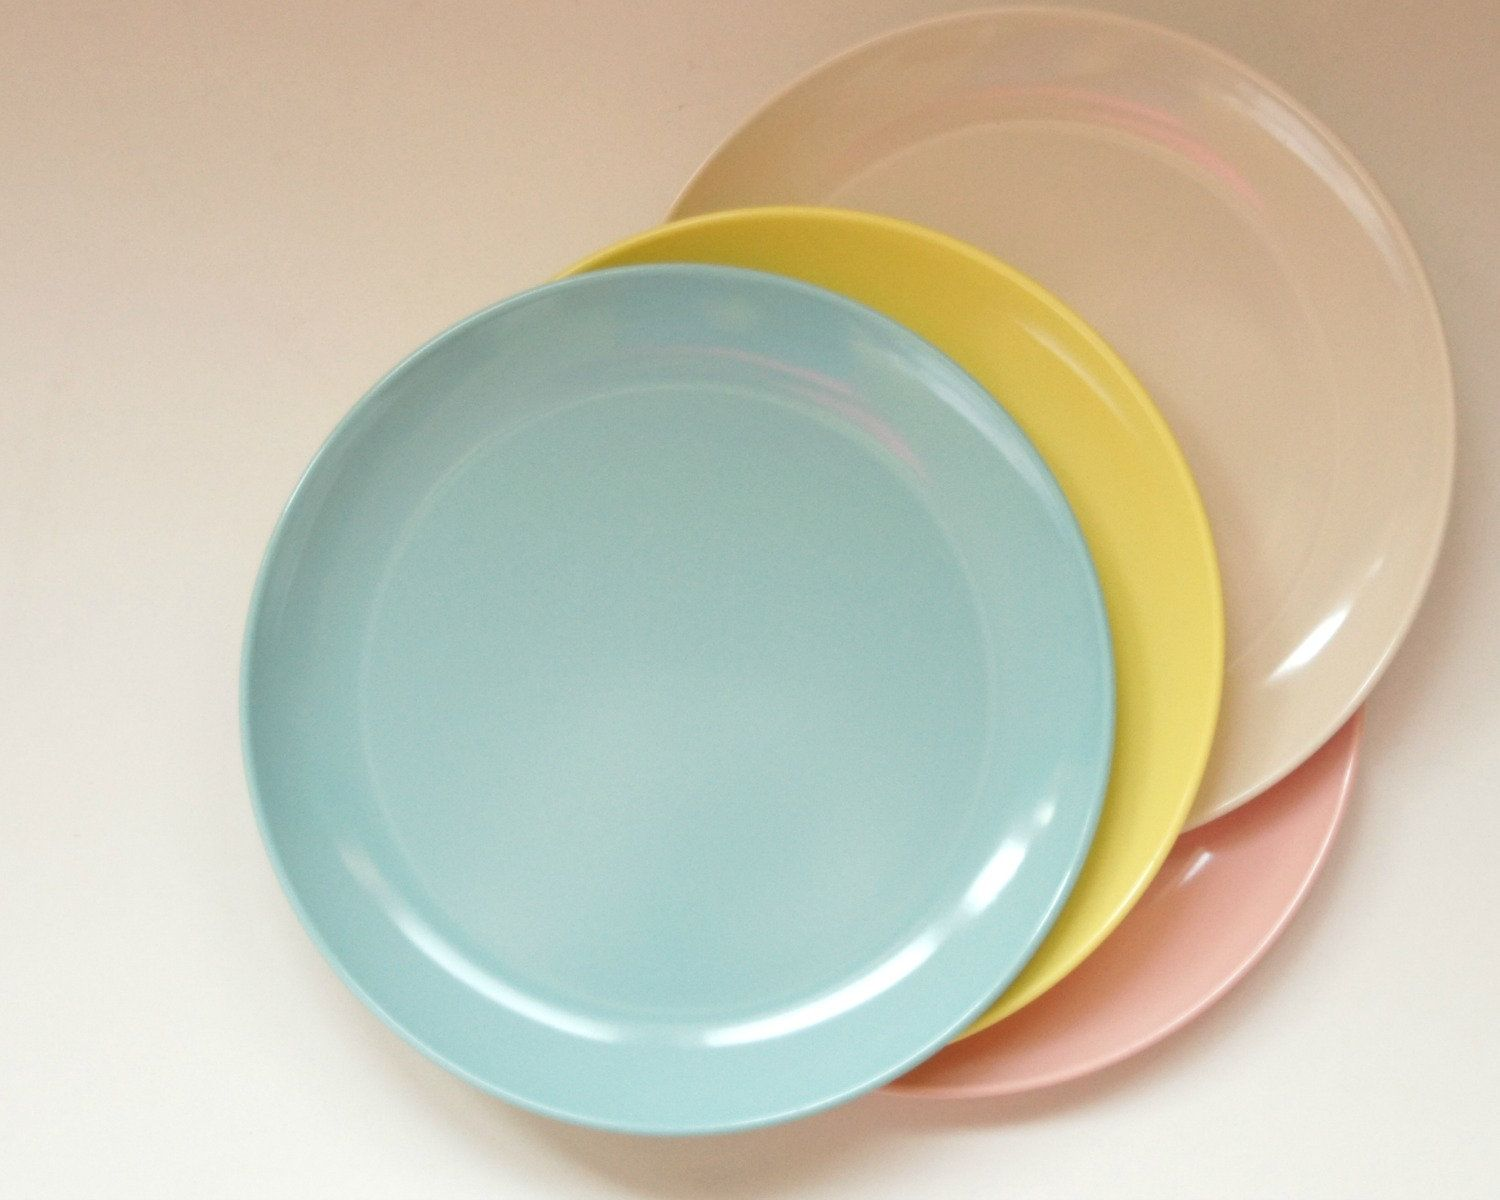 Pastel Melmac Dishes Vintage Melamine Plates Pie Salad Pink Blue Yellow Windsor Marcrest Stetson Plastic By Sentimentalfavorites On Etsy